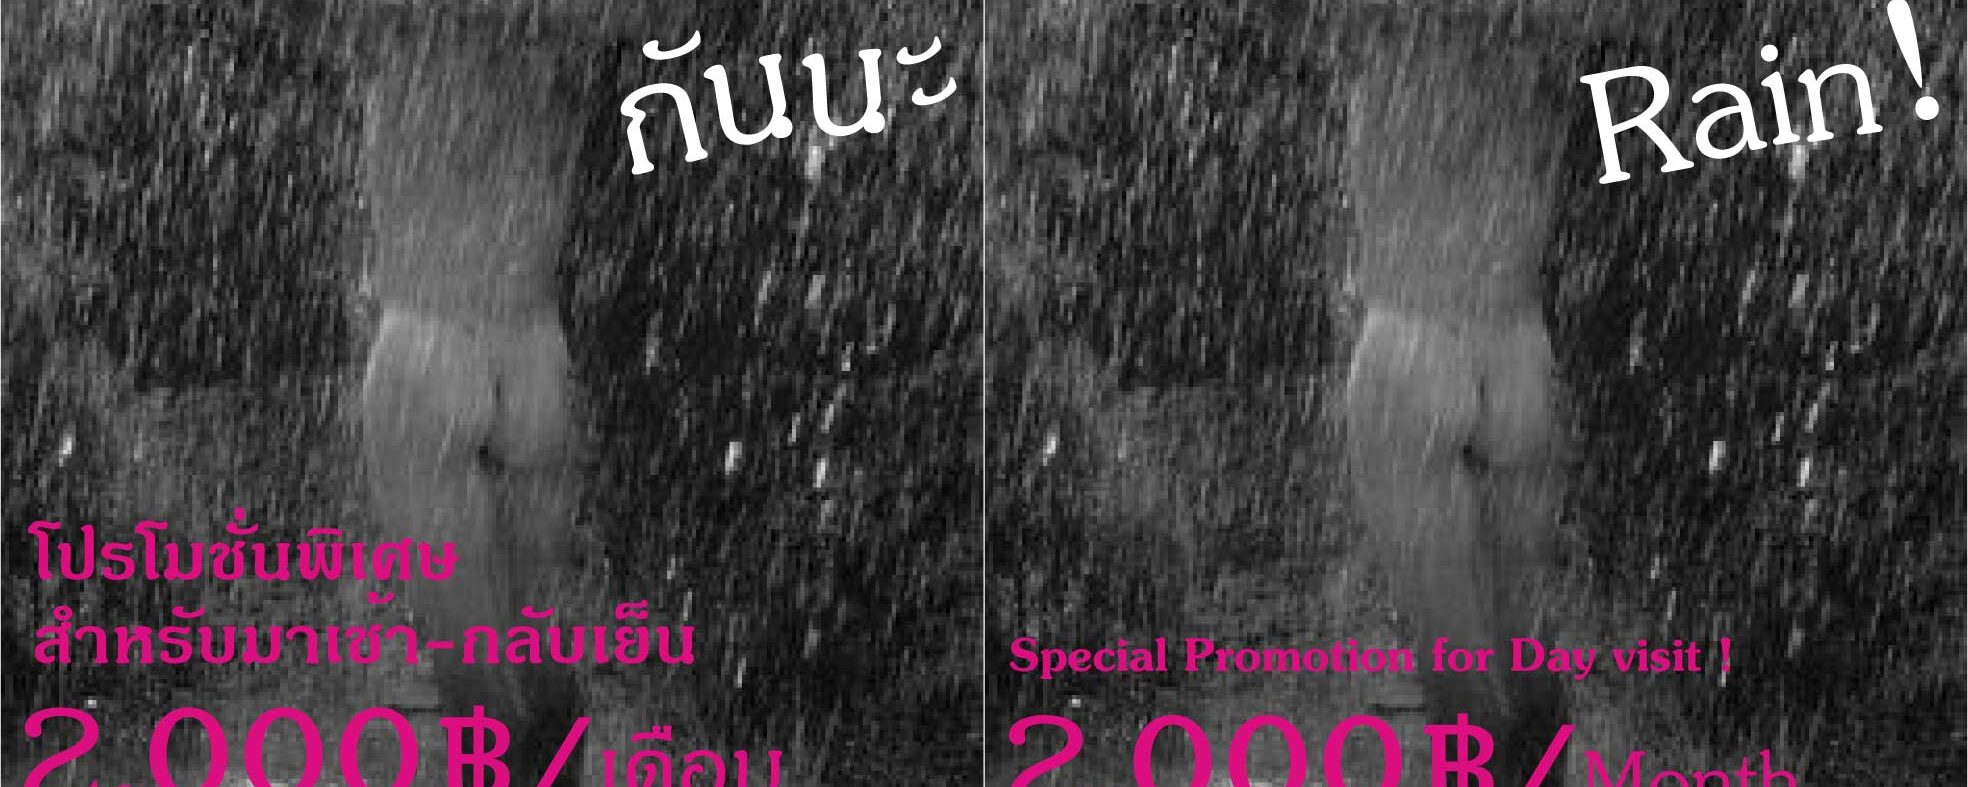 Go nude in the rain! @ BareFeet Naturist Resort Bangkok